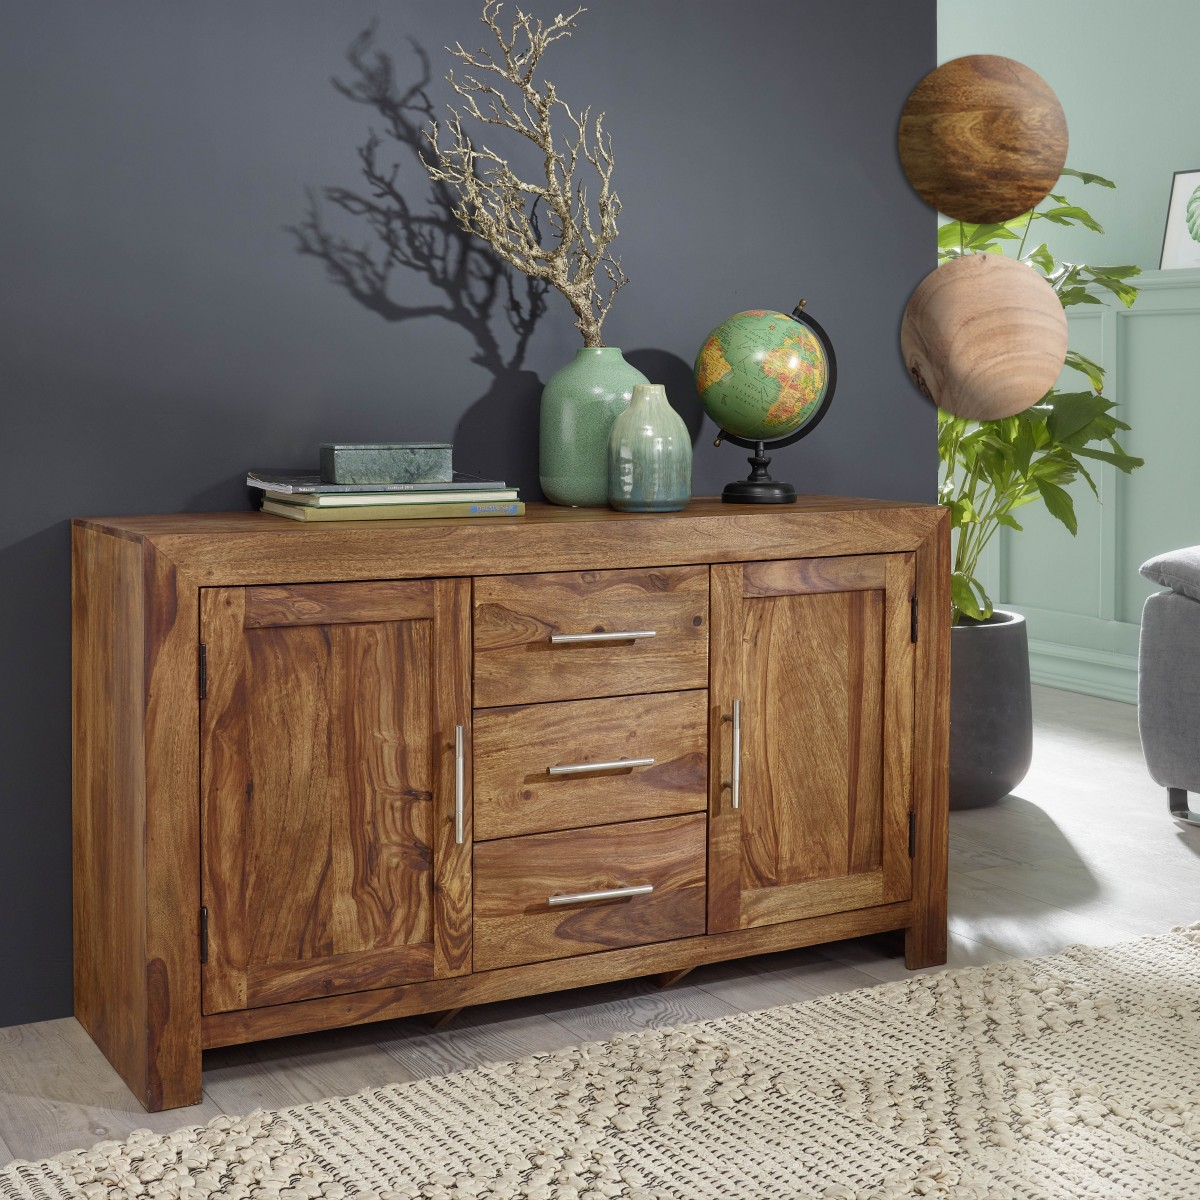 kommode mit schubladen und tren trendy wohnling sideboard mumbai massivholz akazie kommode cm. Black Bedroom Furniture Sets. Home Design Ideas